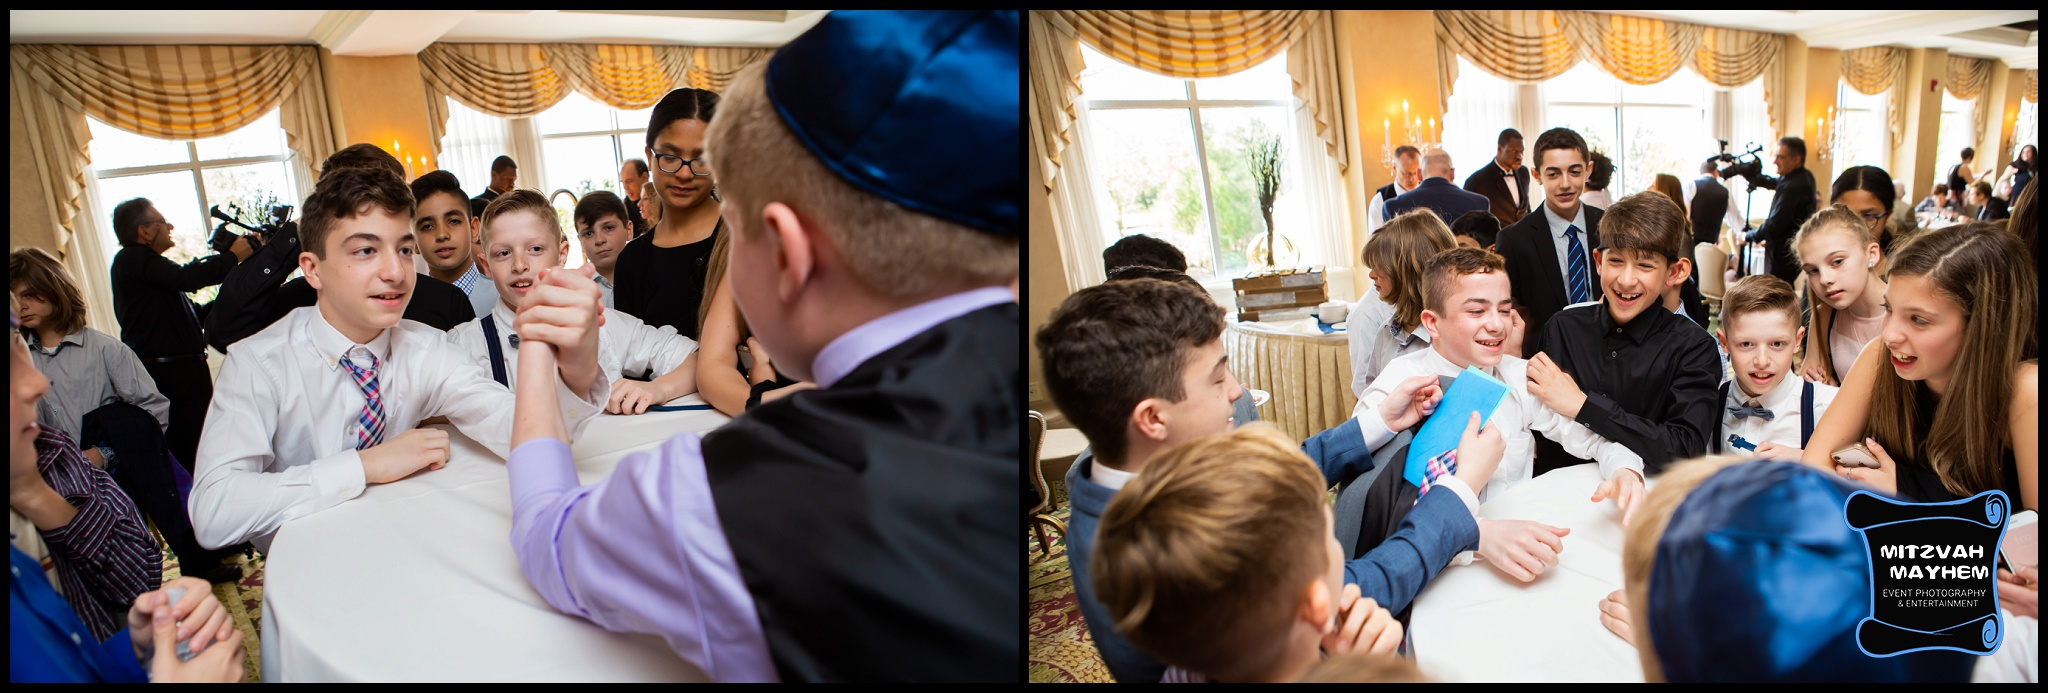 nj-mitzvah-photographer-bridgewater-manorl-12.JPG